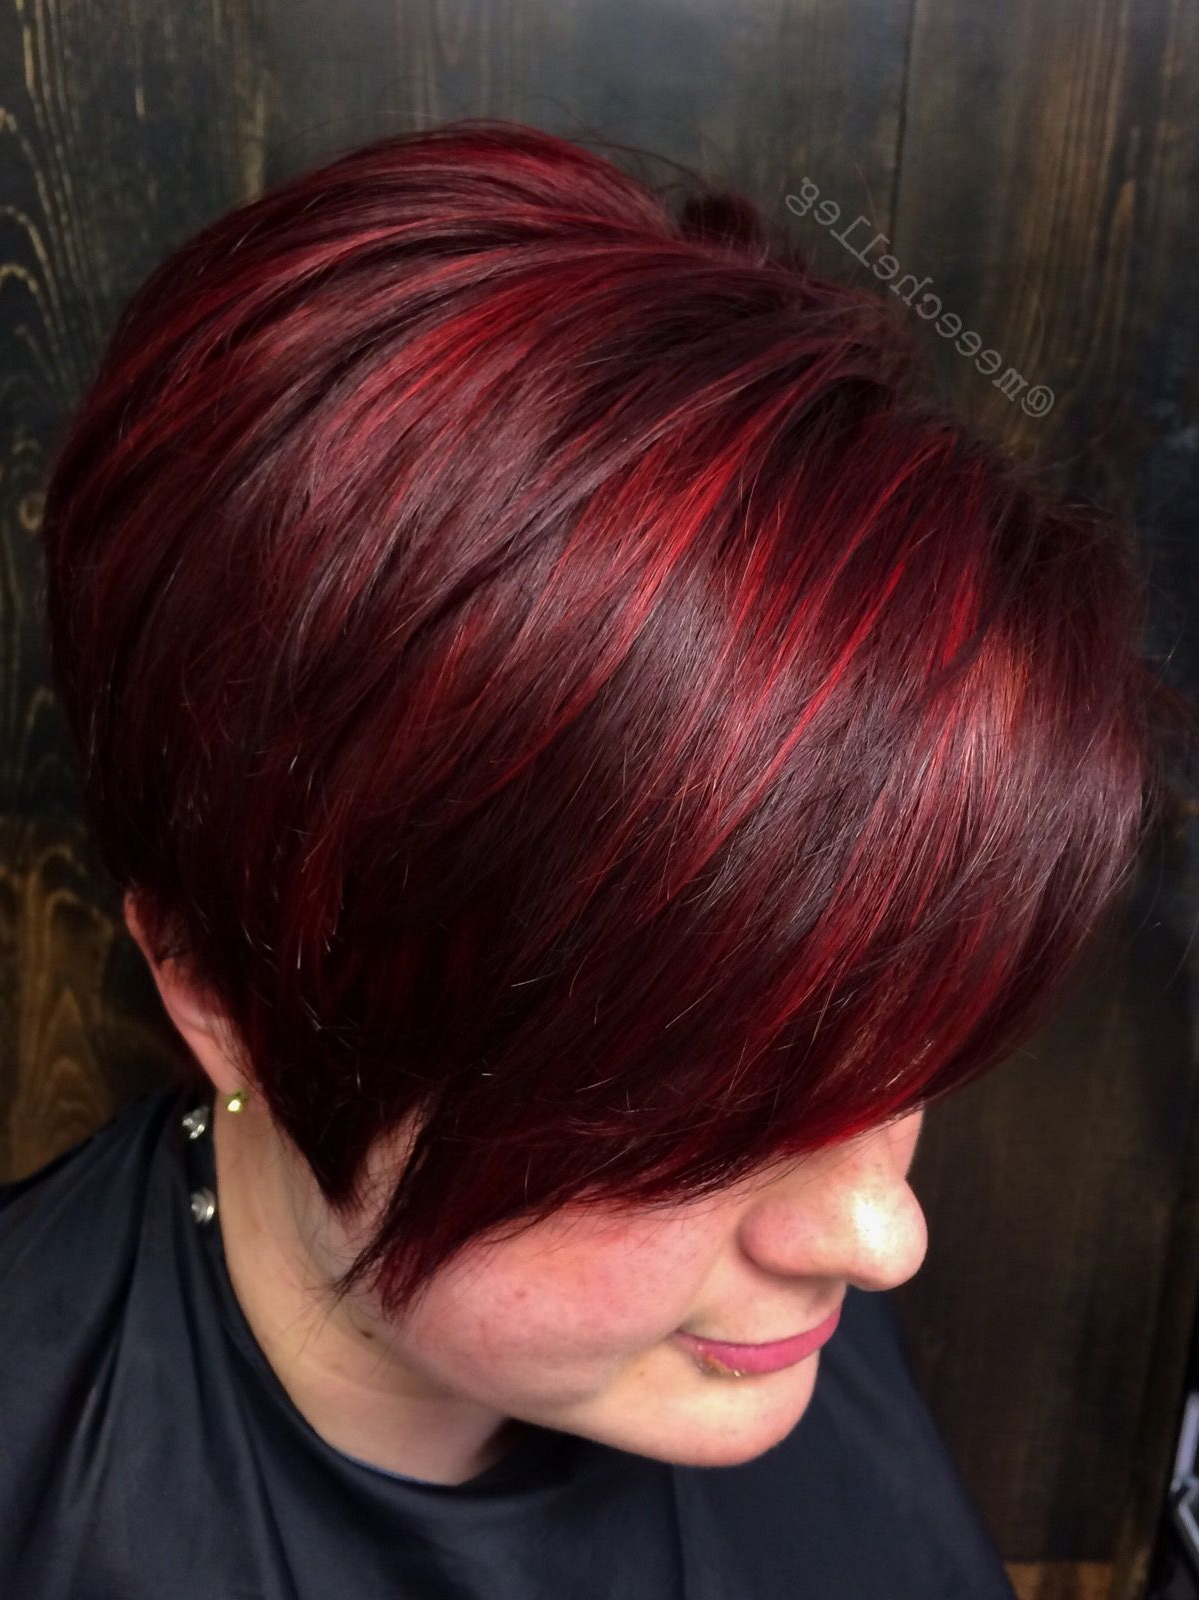 Bright Red, Red Highlights, Stand Out Red, Candy Apple Red, Short Pertaining To Bright Red Short Hairstyles (View 2 of 25)